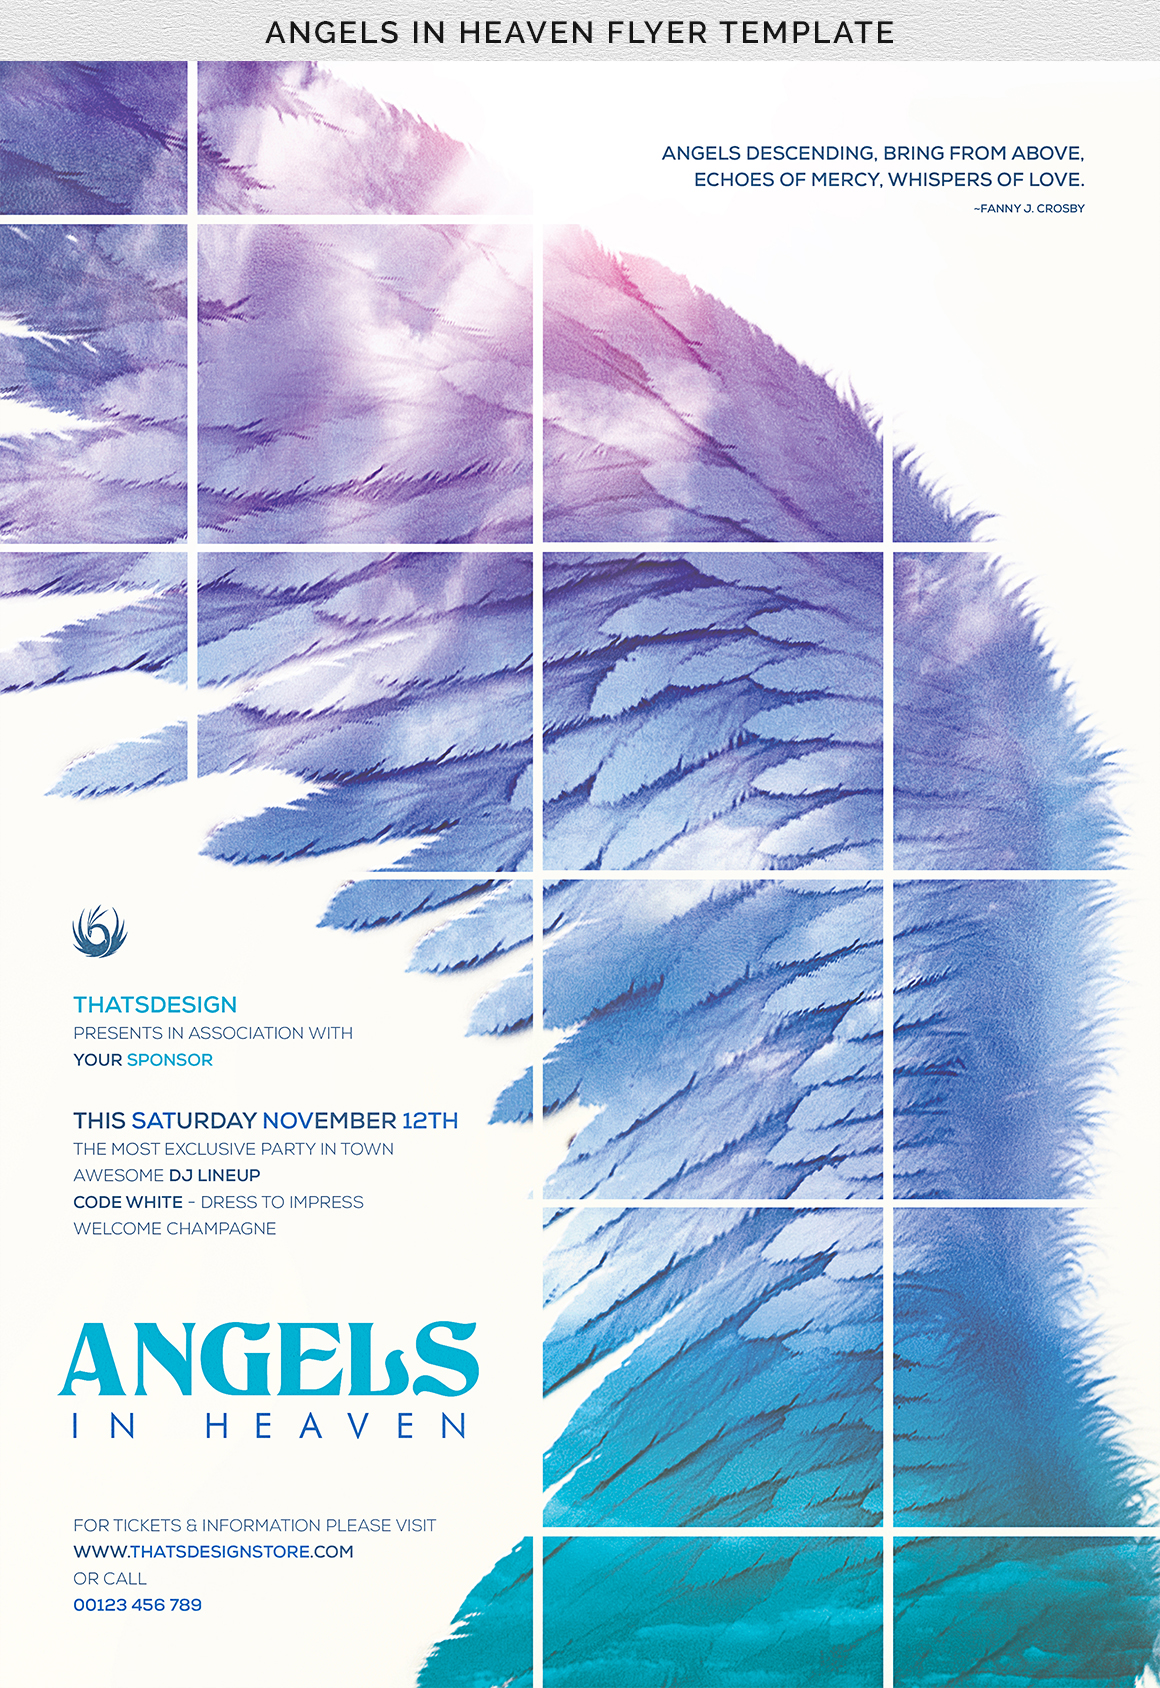 Angels in Heaven Flyer Template example image 7